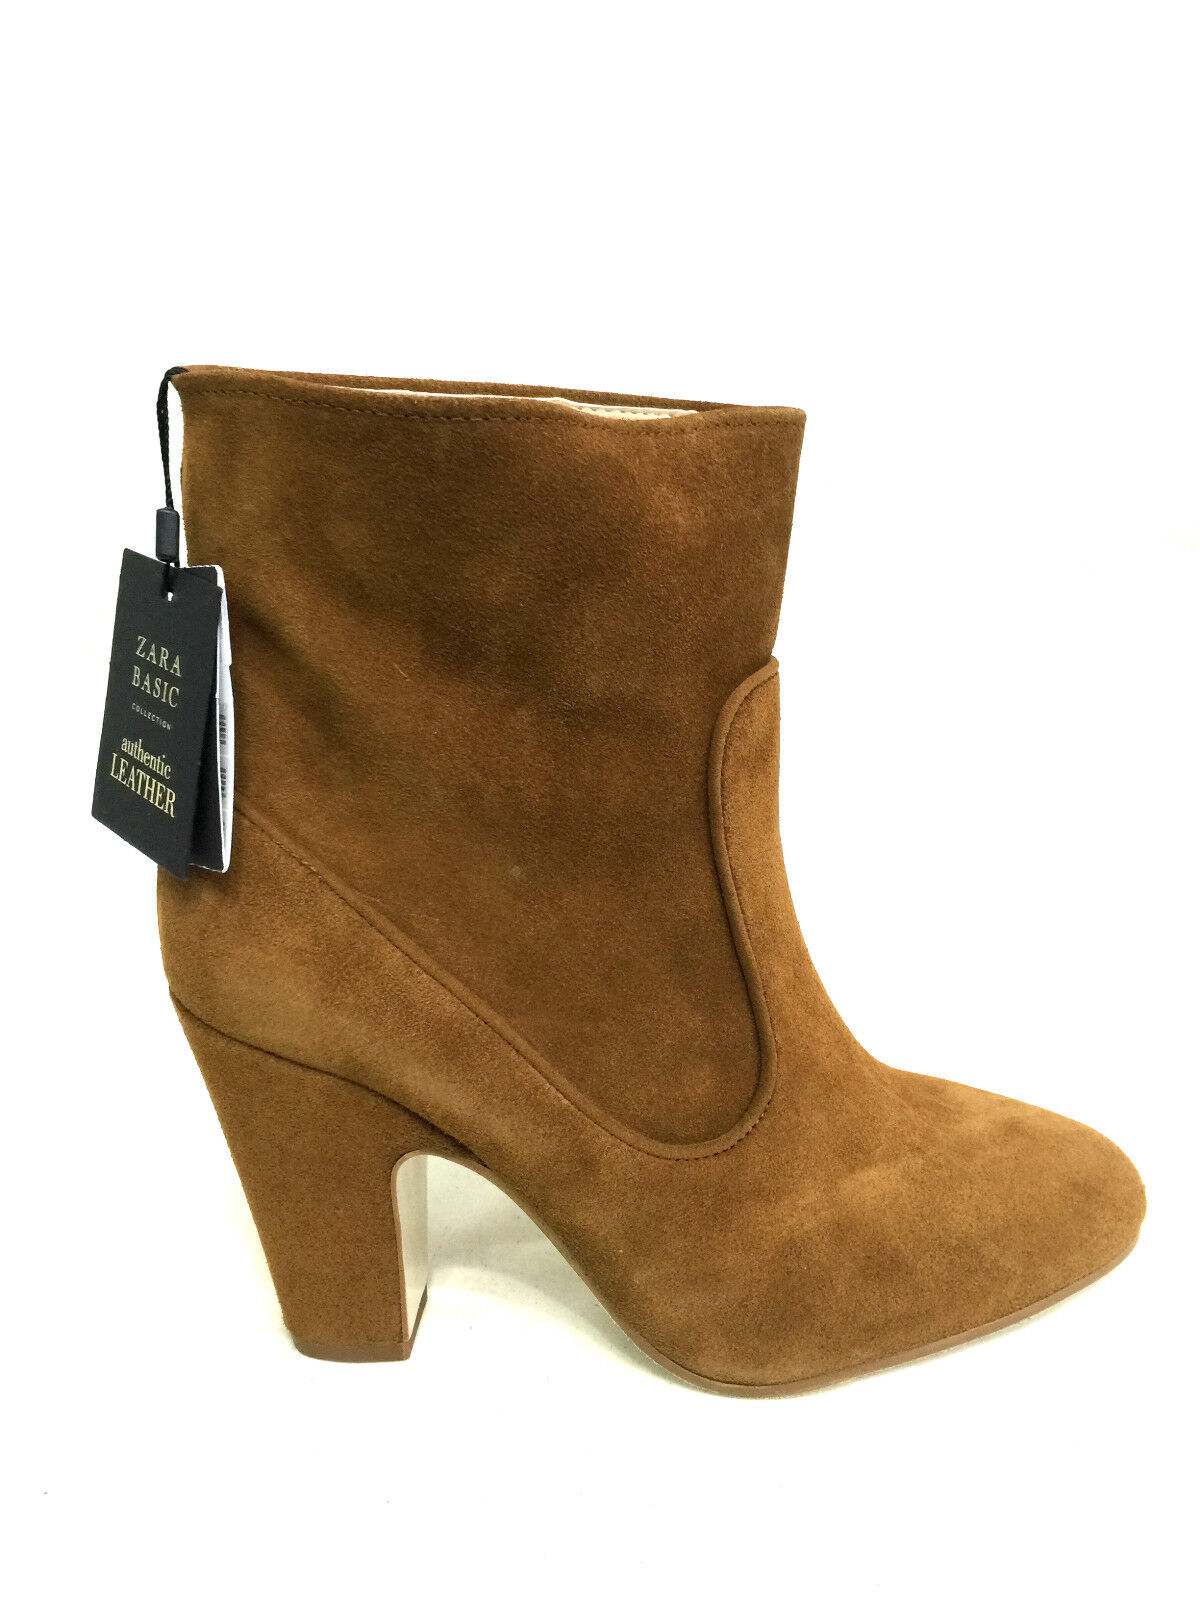 ZARA BROWN LEATHER ANKLE BOOTS SIZE 37_38_39_40